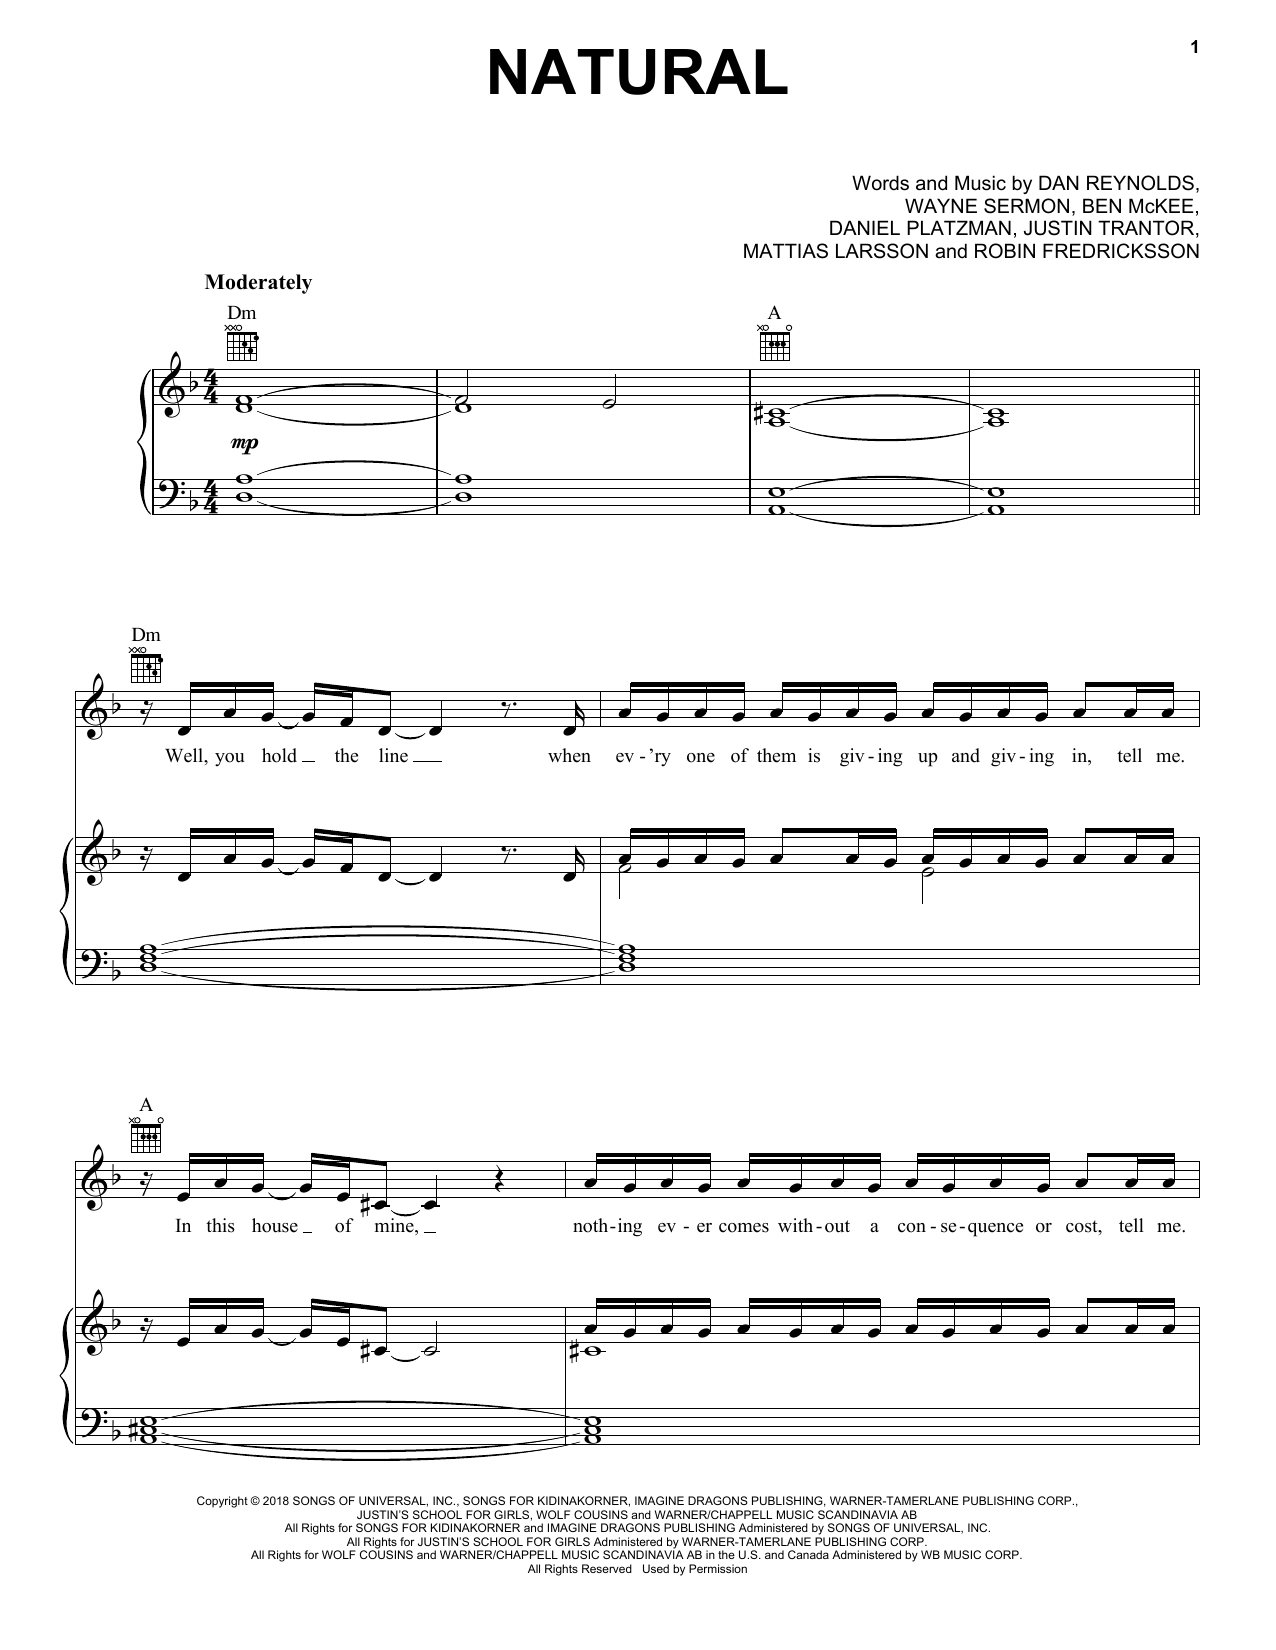 Imagine Dragons Natural sheet music notes and chords